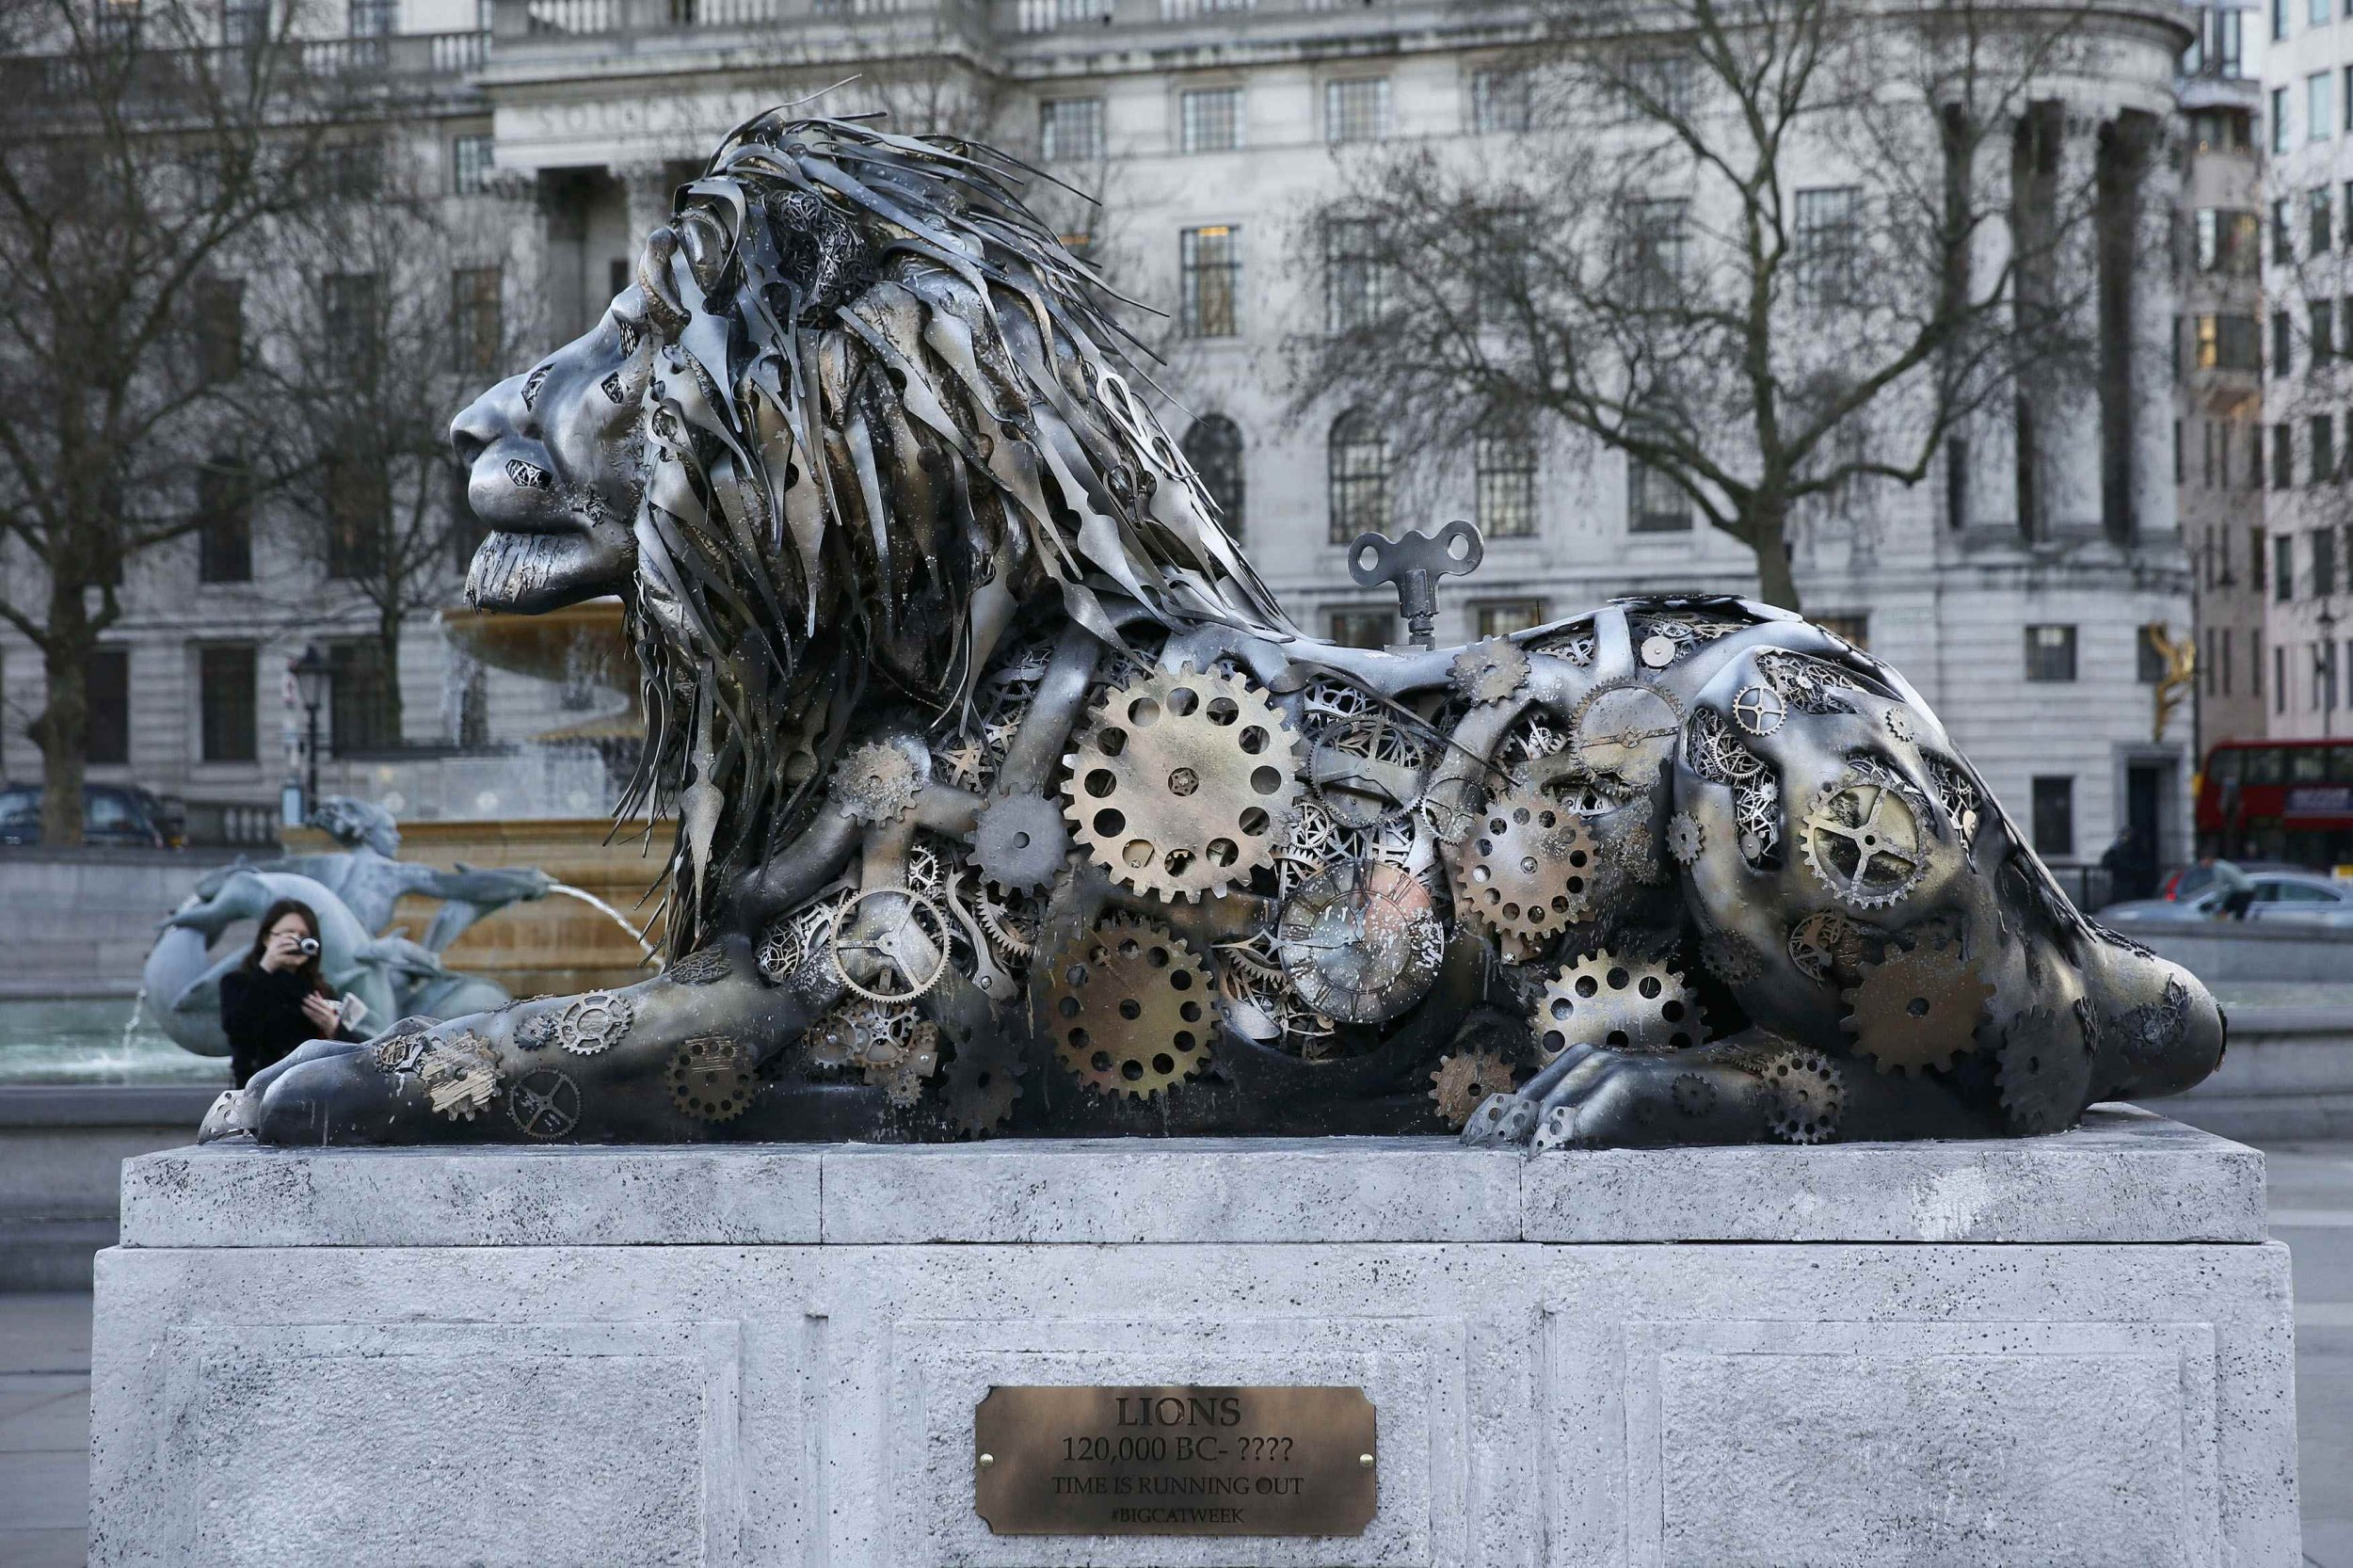 A pedestrian photographs a lion sculpture installed by National Geographic Wild to highlight the threat to endangered big cats, in Trafalgar Square in London, Britain January 28, 2016. National Geographic installed the sculpture alongside Trafalgar Square's famous lion statues to promote it's week of programming on big cats. REUTERS/Stefan Wermuth EDITORIAL USE ONLY. NO RESALES. NO ARCHIVE